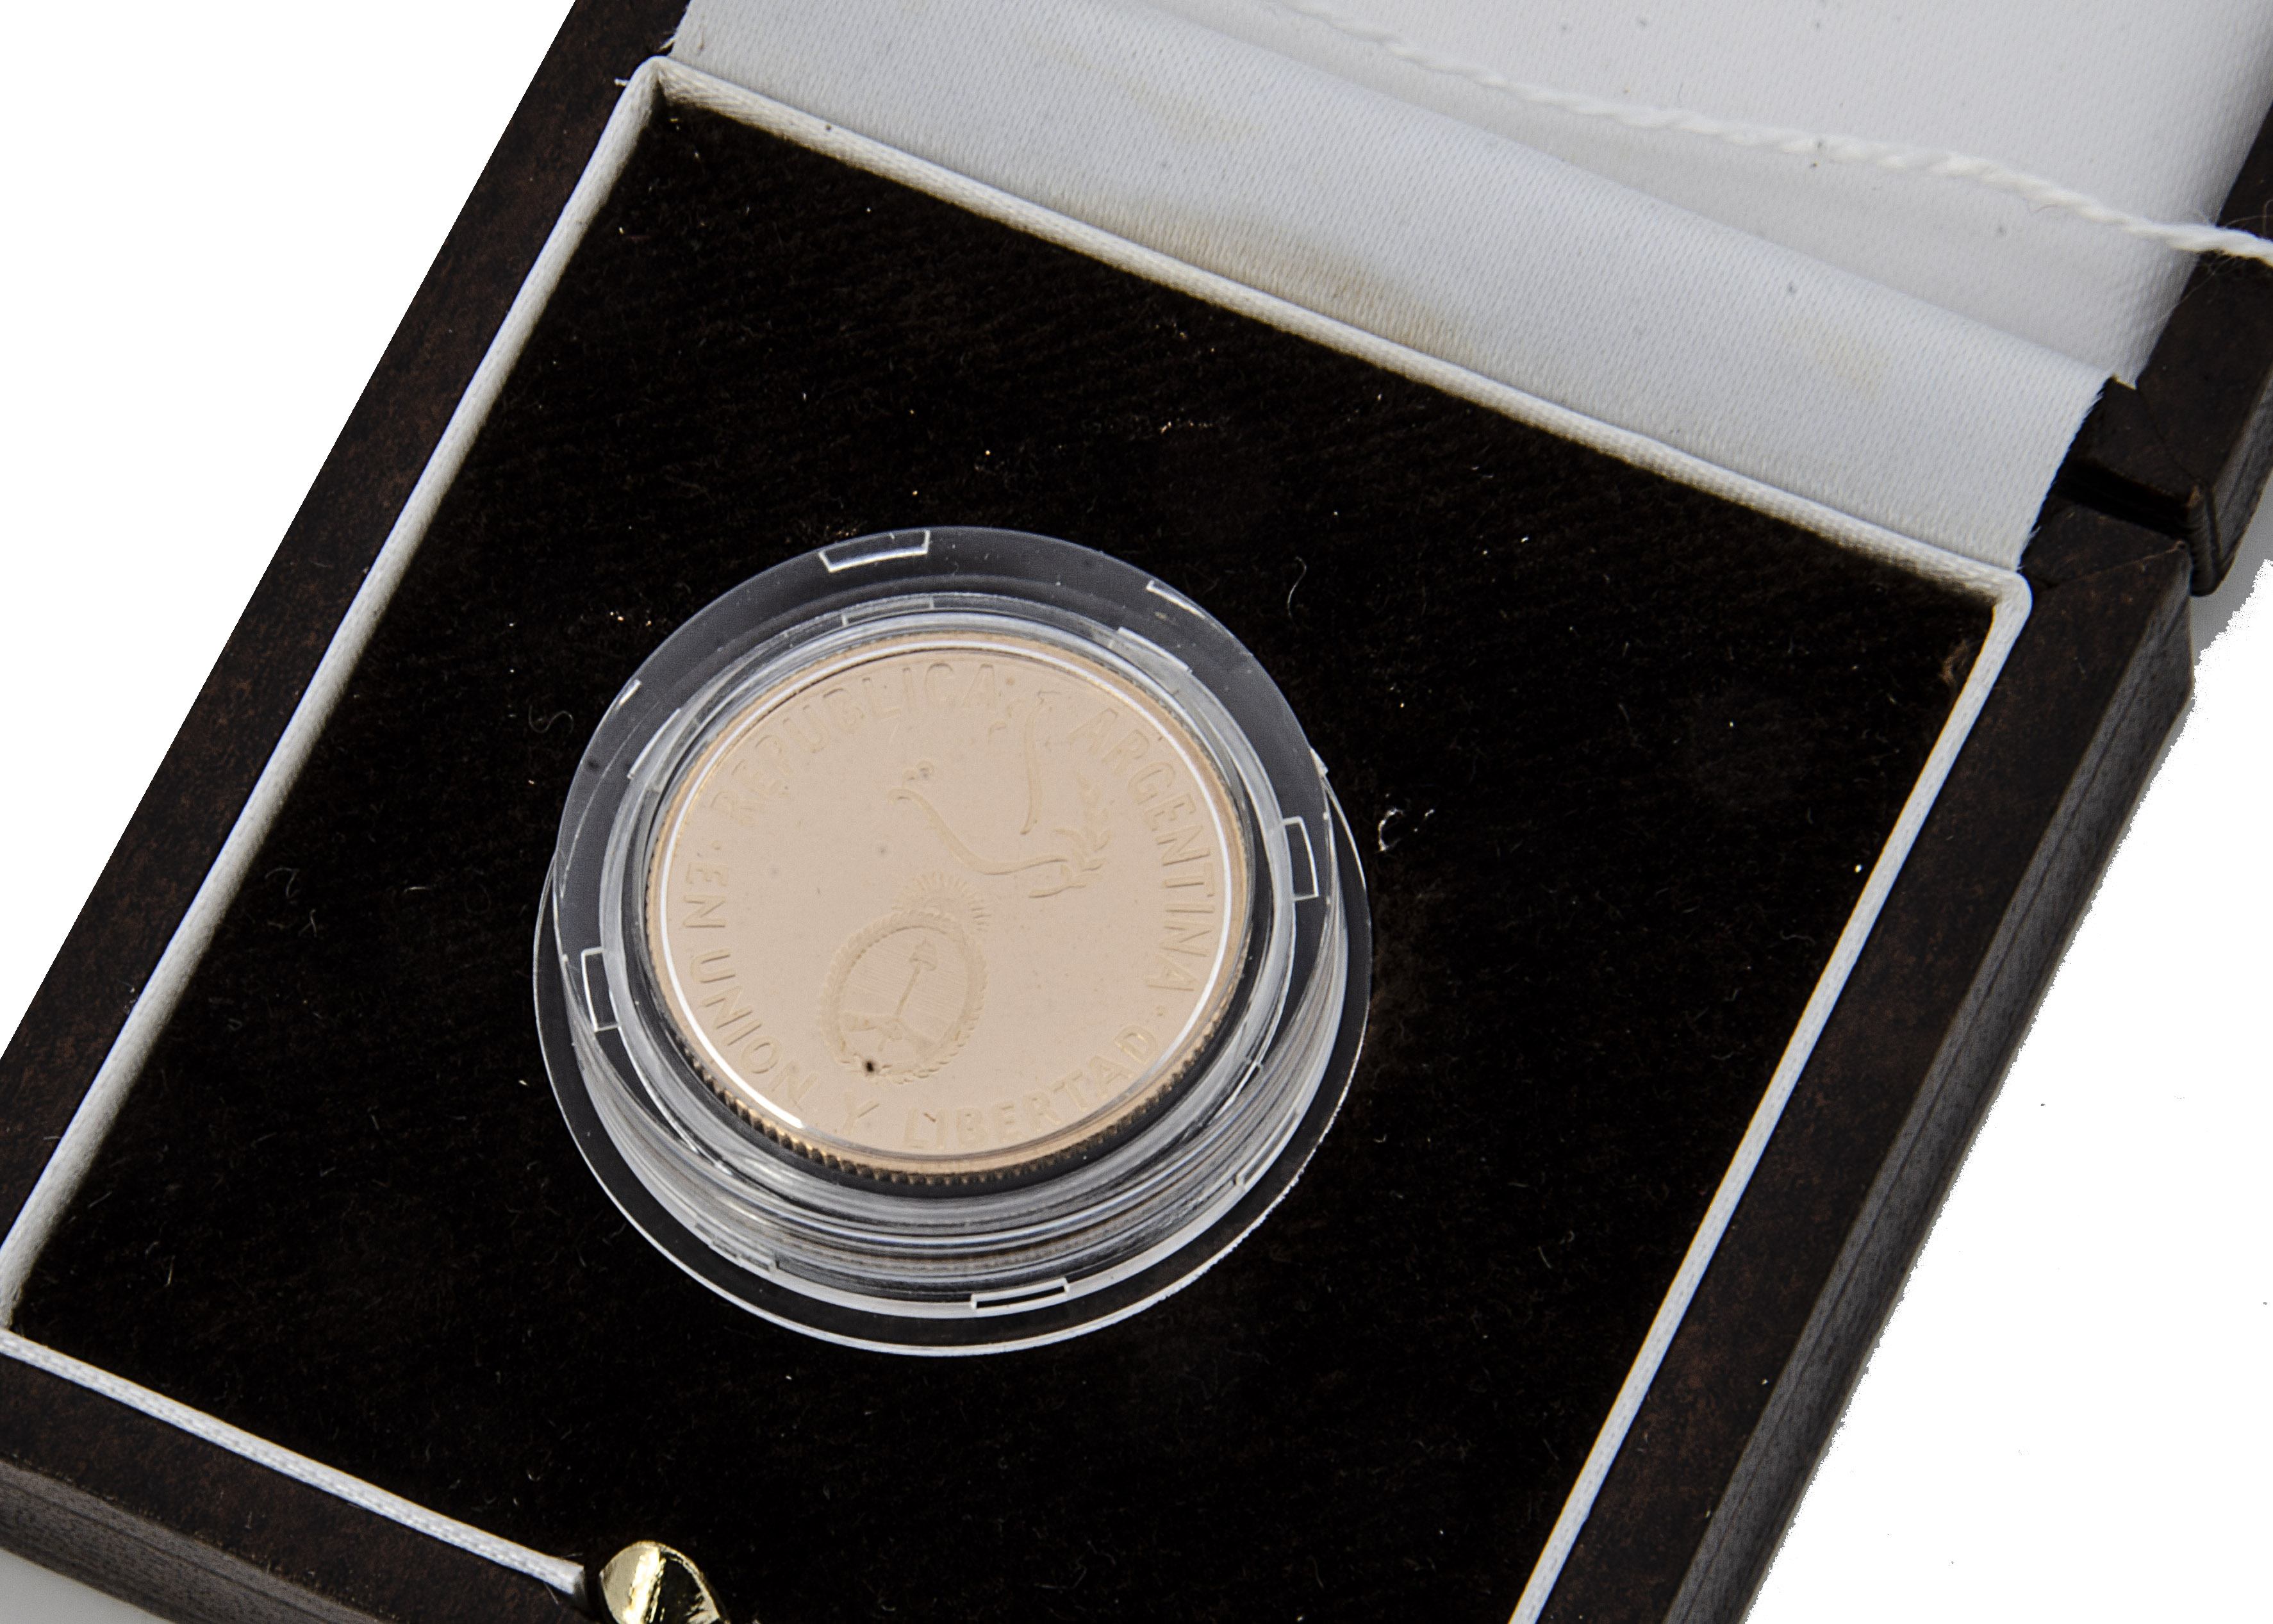 A modern Republic of Argentina Gold Proof £5 coin, 1995, with certificate, 8.064g, 900 fineness, - Image 2 of 2